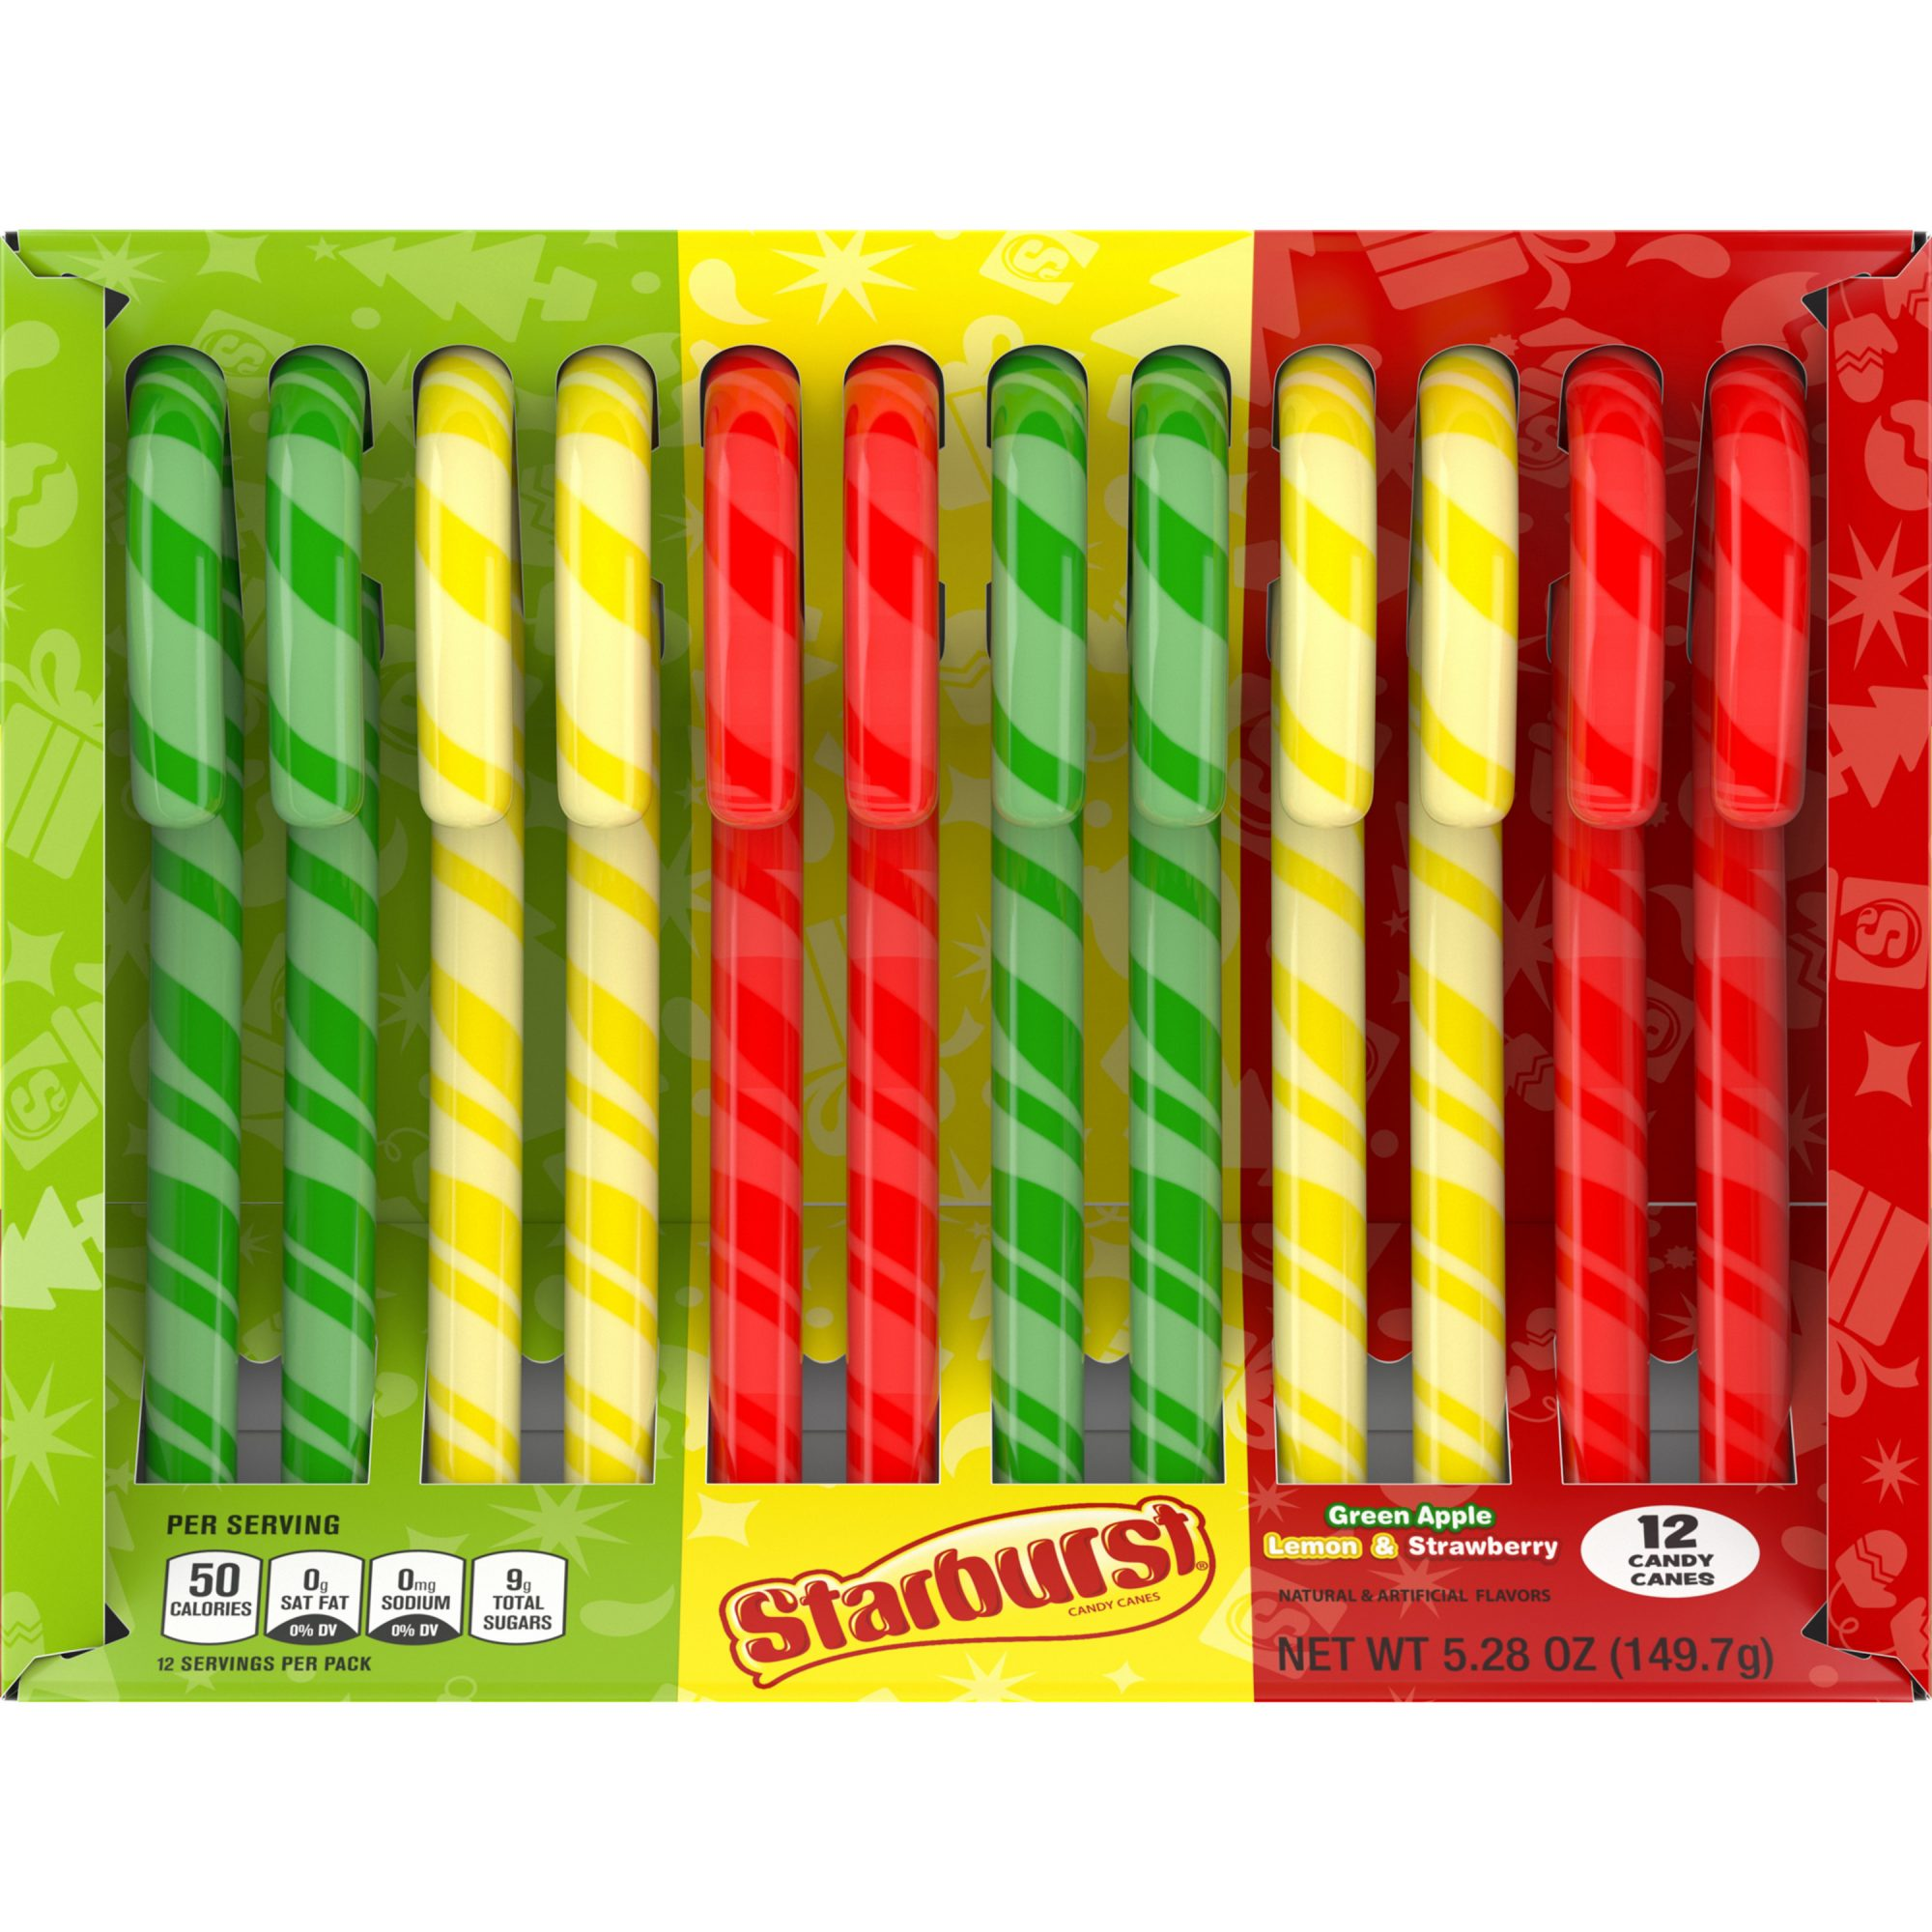 Starburst Holiday Candy Canes